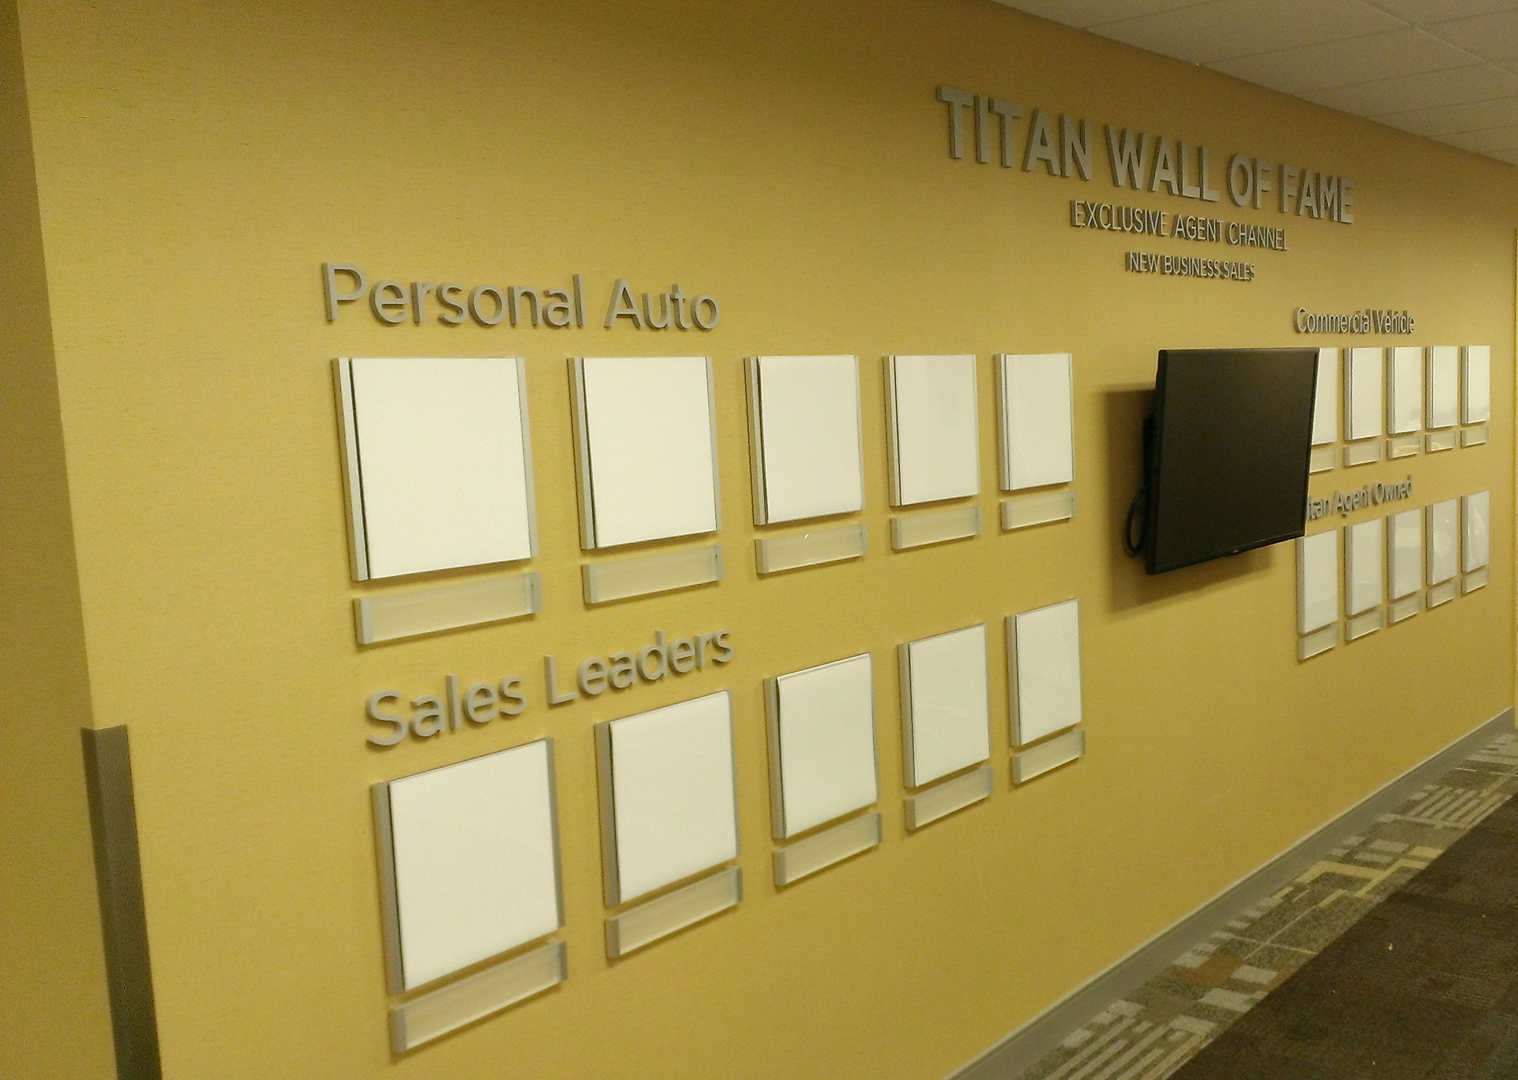 Corporate wall displays